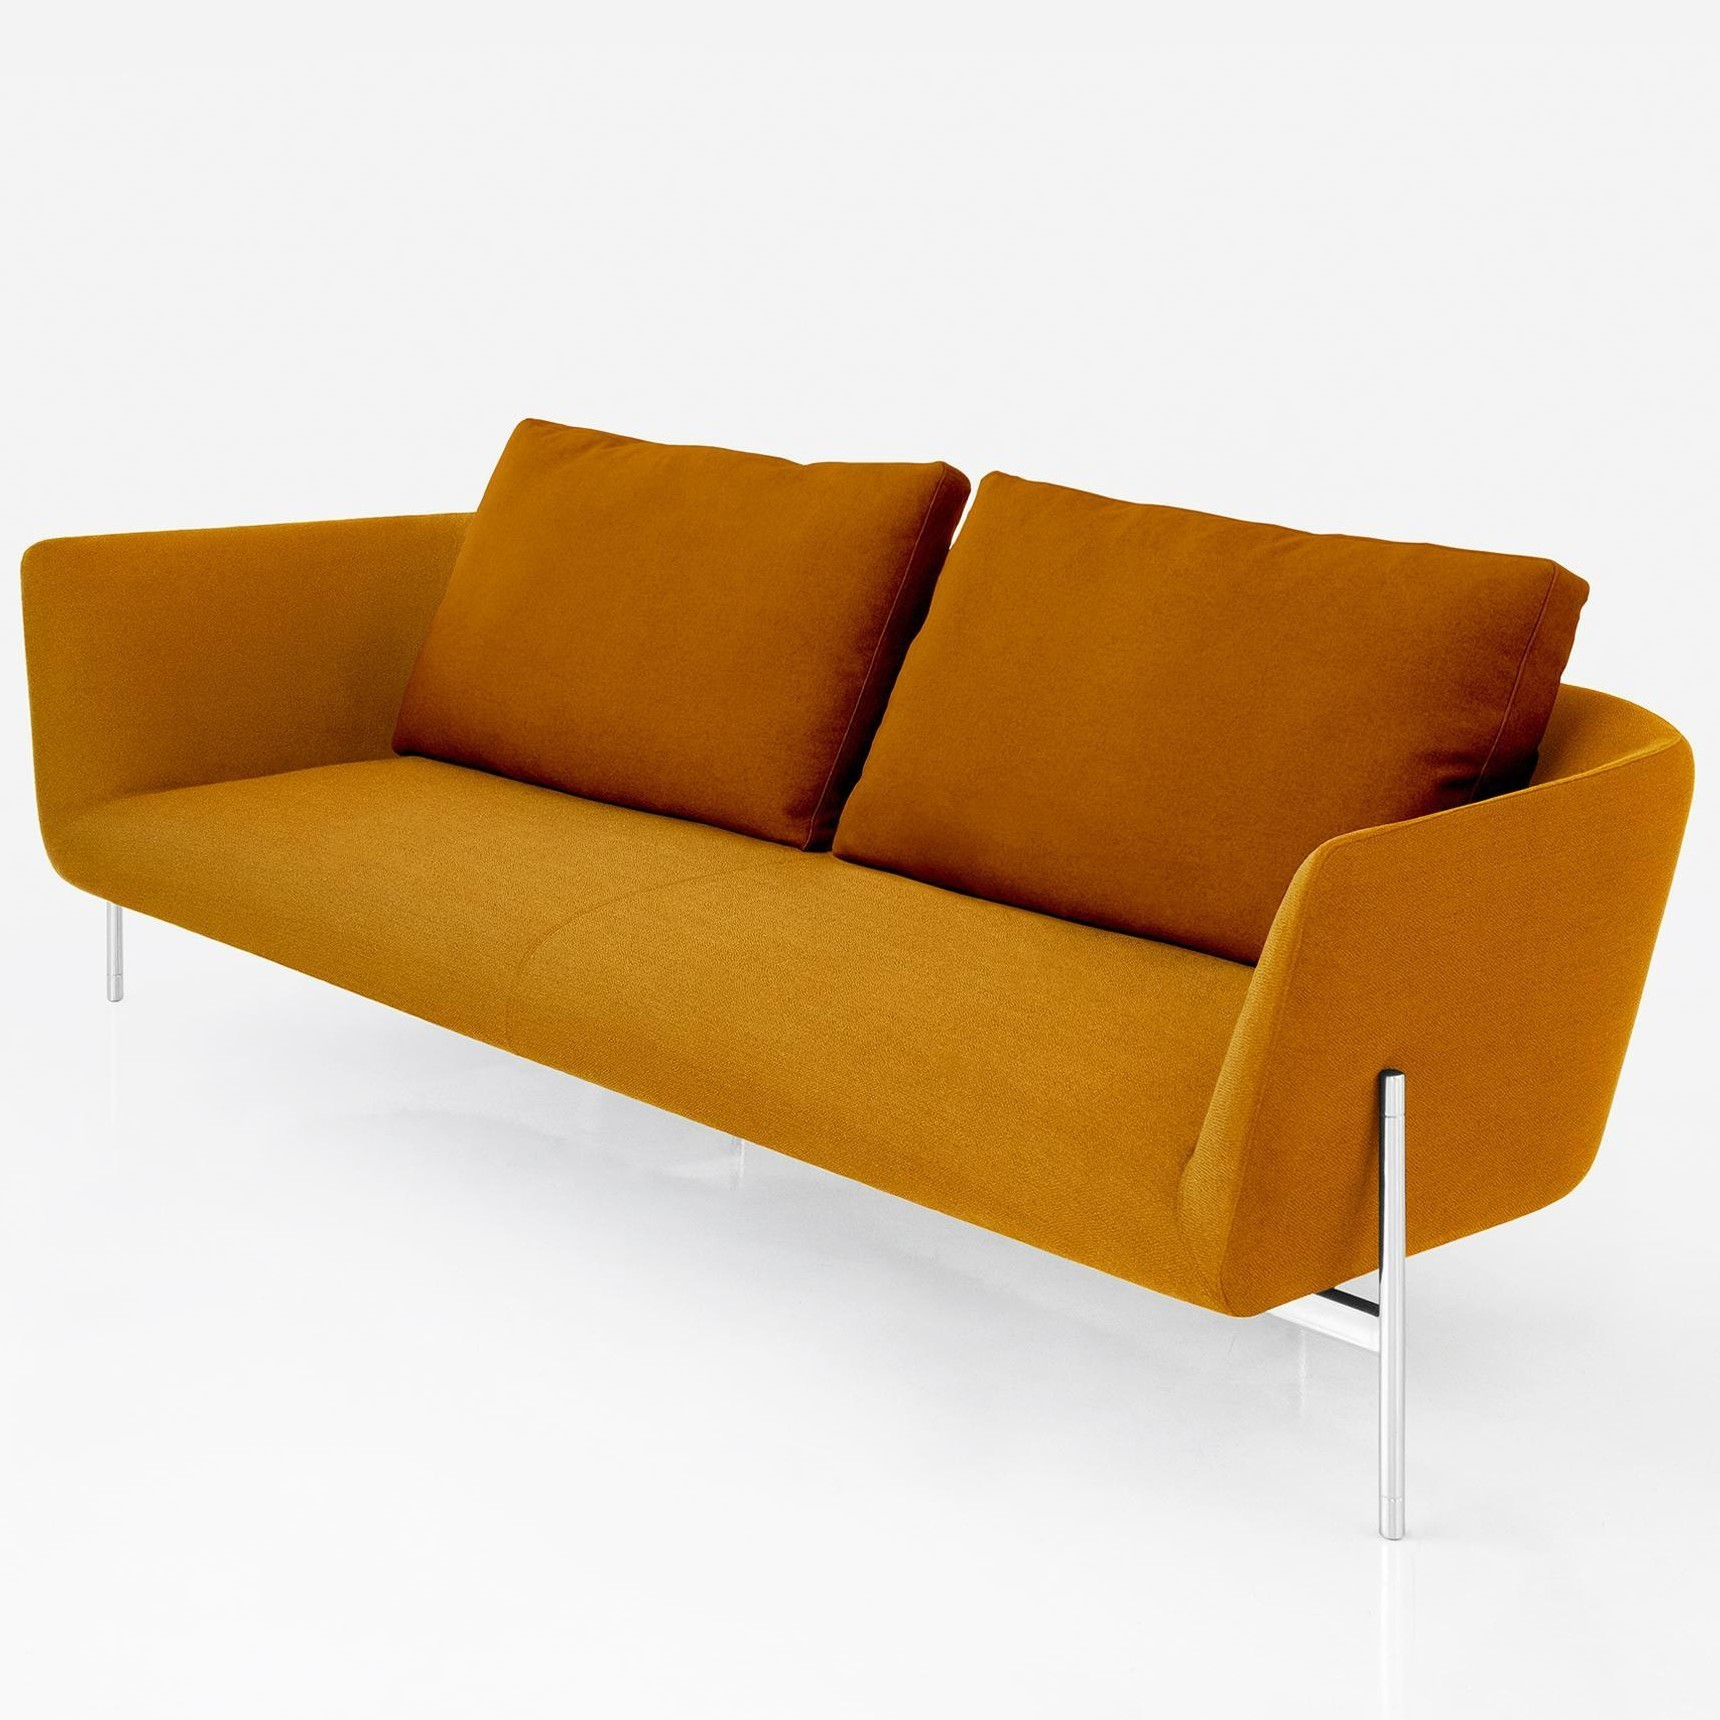 bensen lite sofa rustic turquoise table modern sofas by contemporary designers at haute living